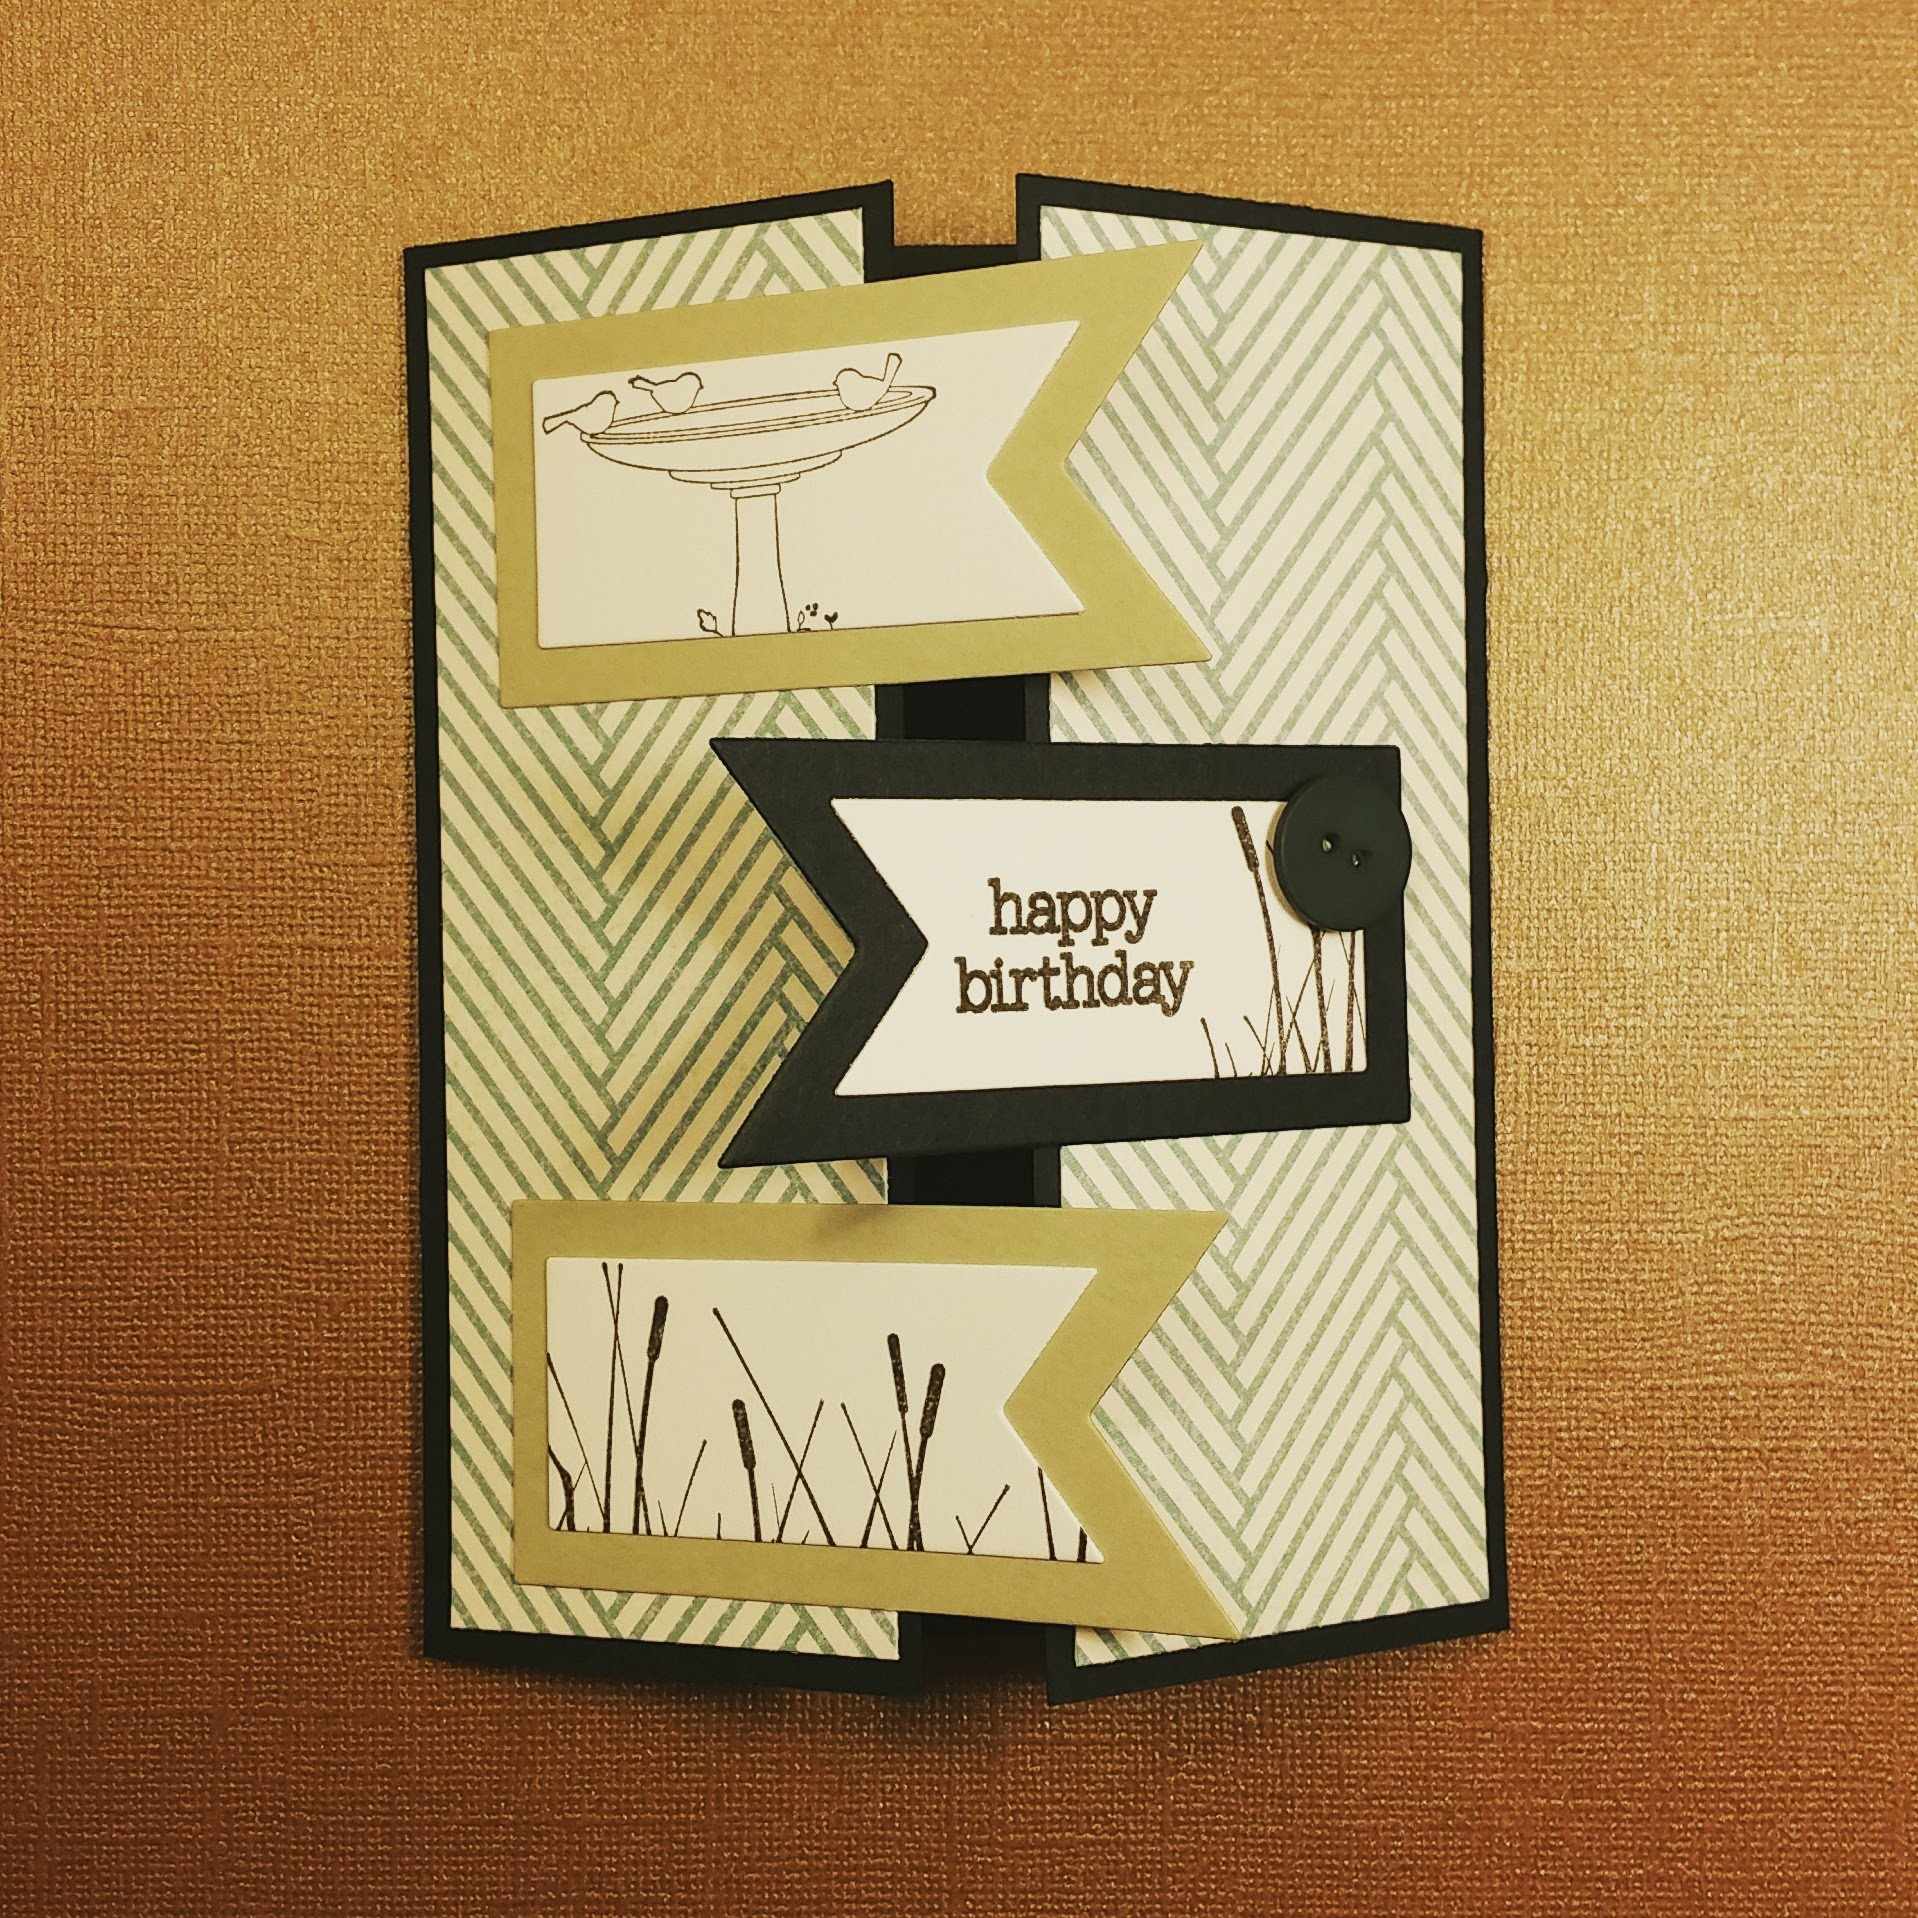 stampin up masculine birthday card ideas ; maxresdefault